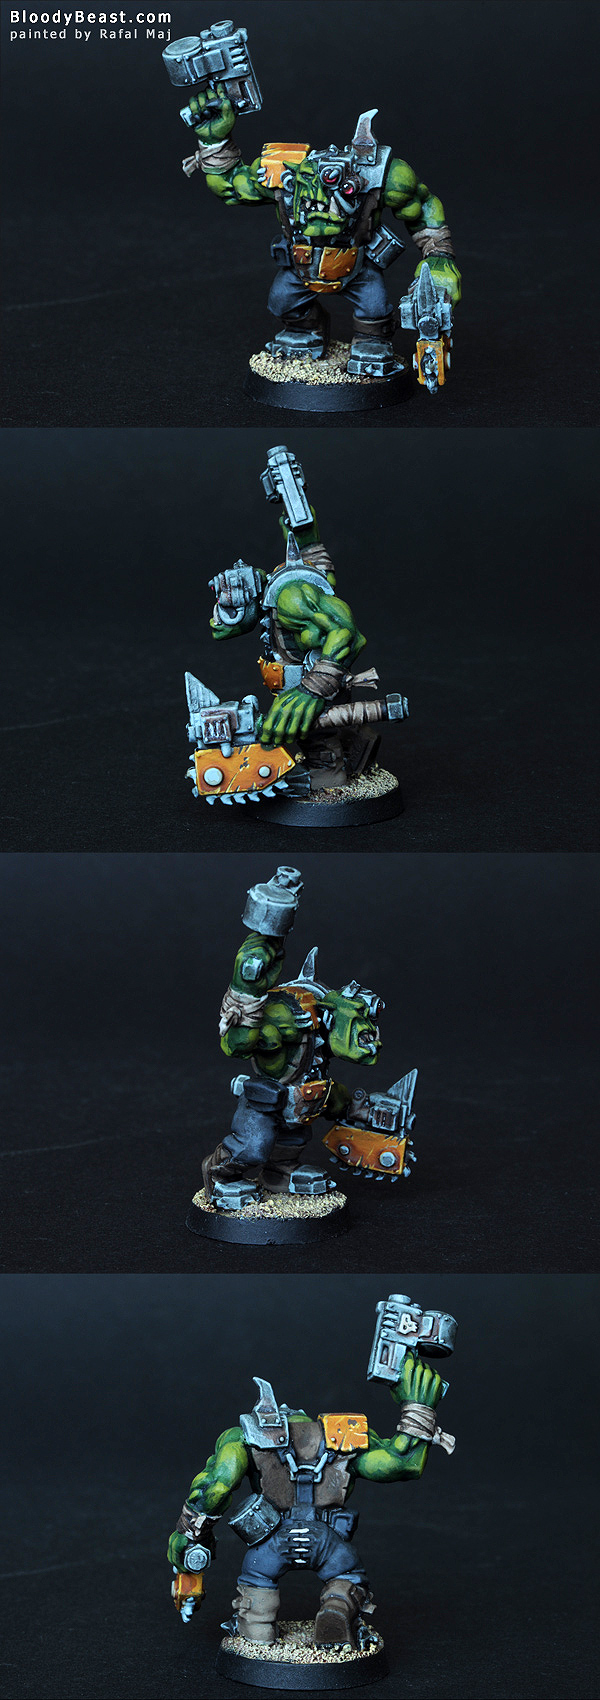 Bad Moon Ork Nob painted by Rafal Maj (BloodyBeast.com)